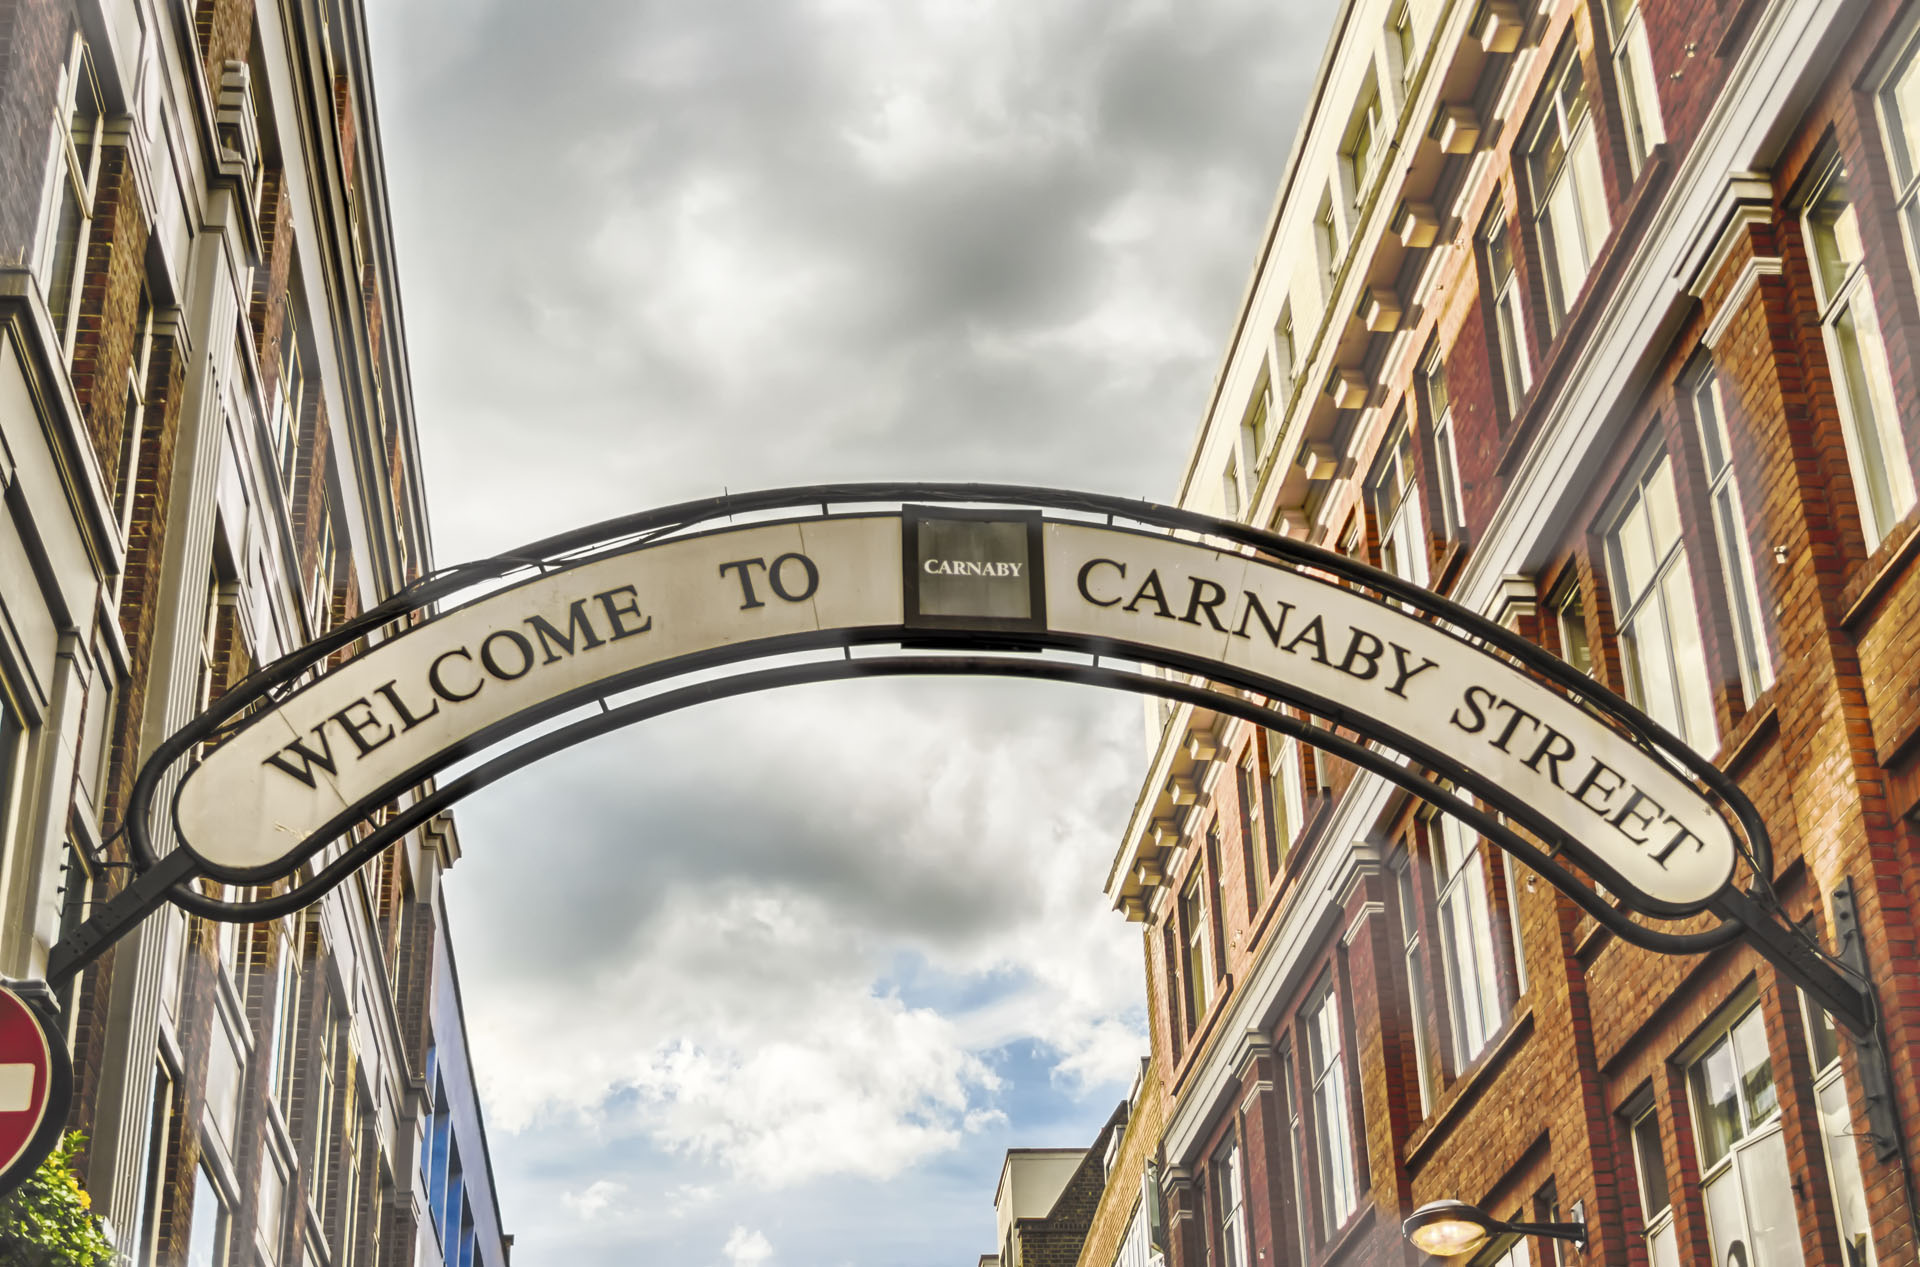 Carnaby Street Sign, London, UK